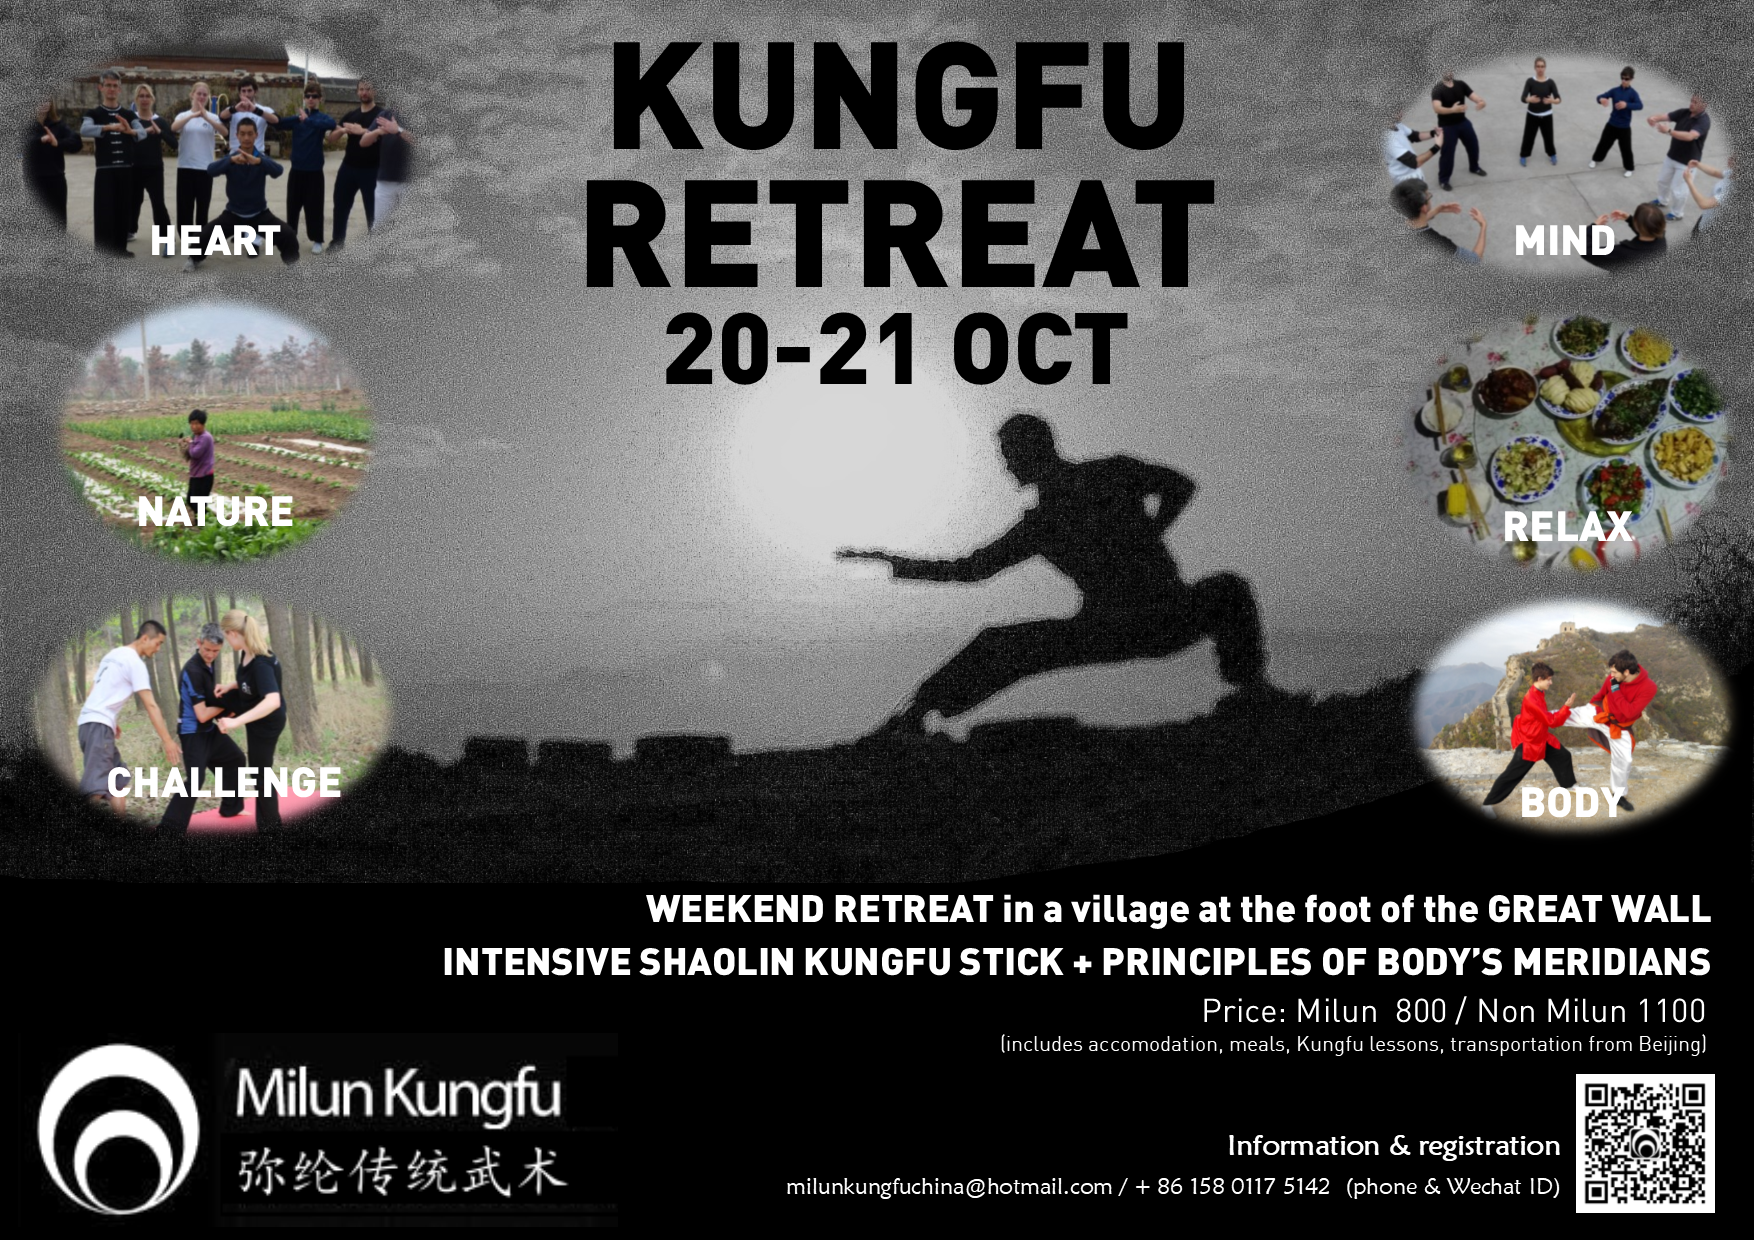 Milun Kungfu Beijing Retreat